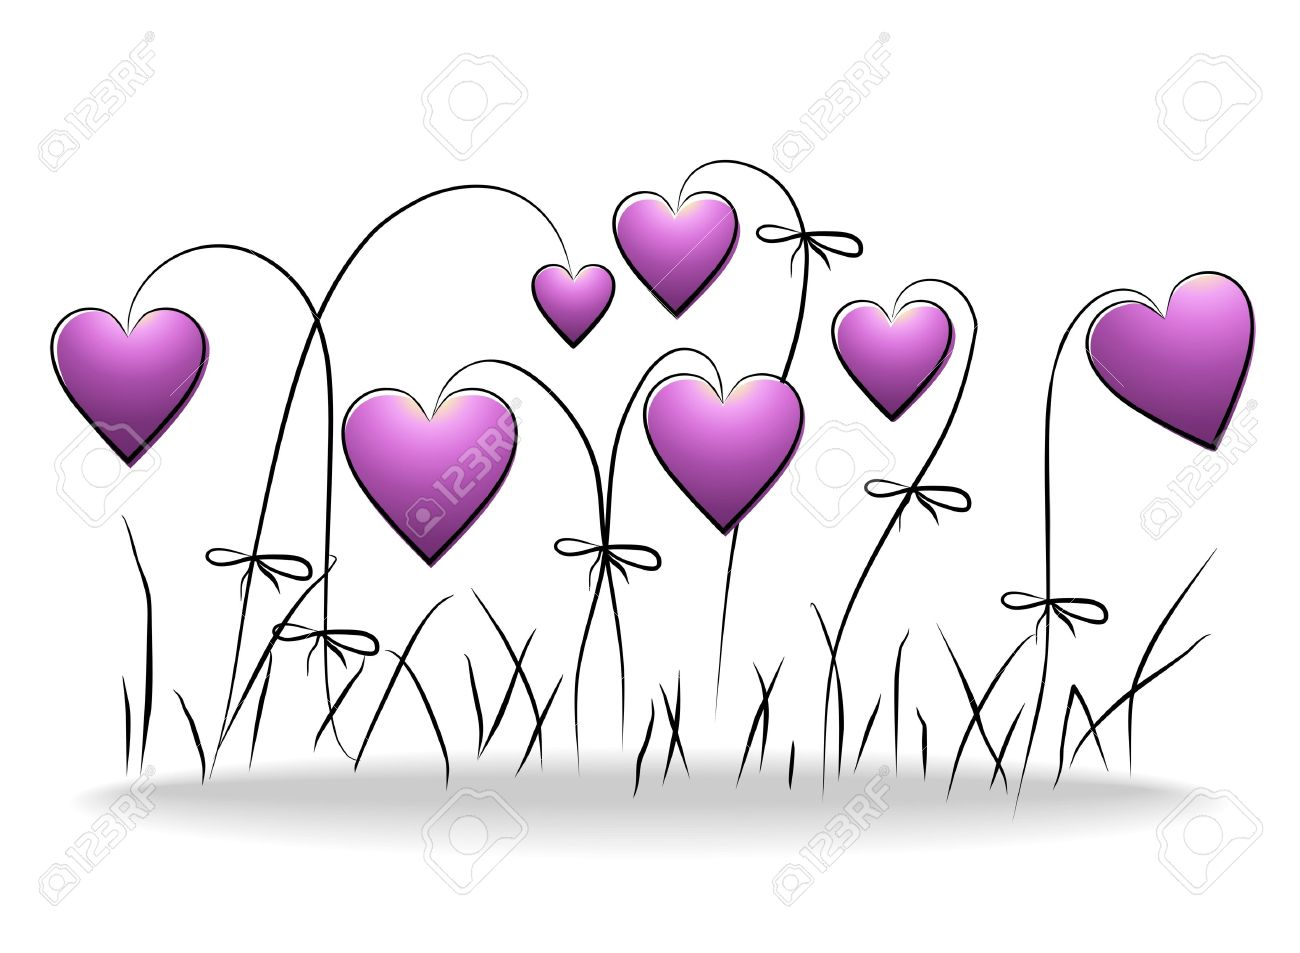 Flowers - romantic floral background with purple hearts Stock Vector - 11623490